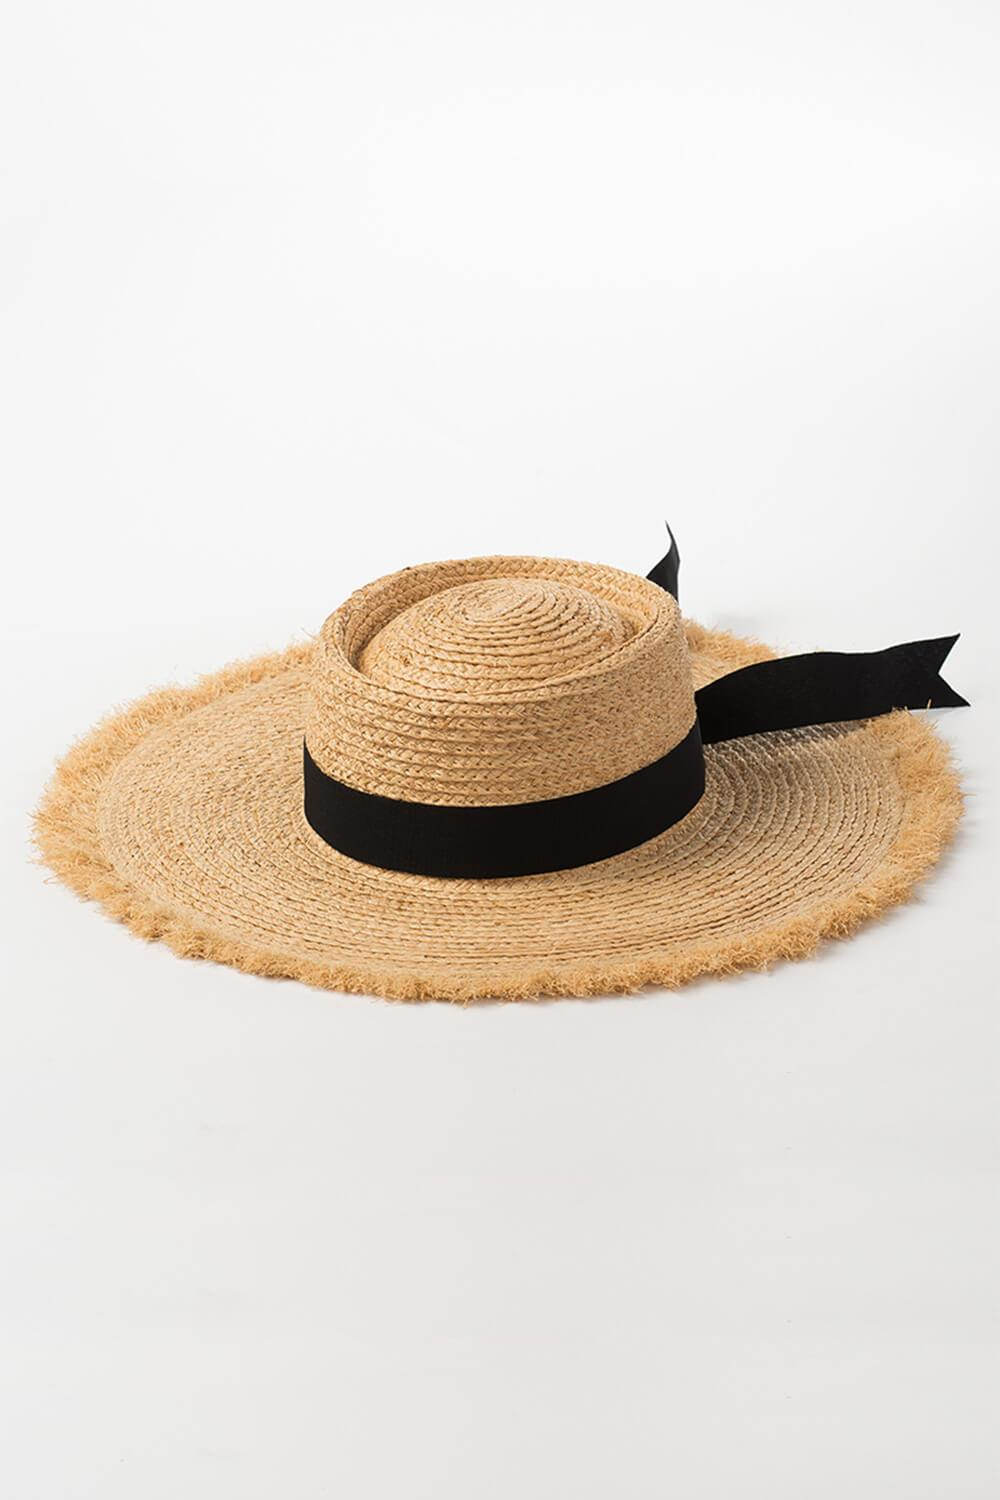 Raffia Straw Black Bow Trimmed Flat Boater